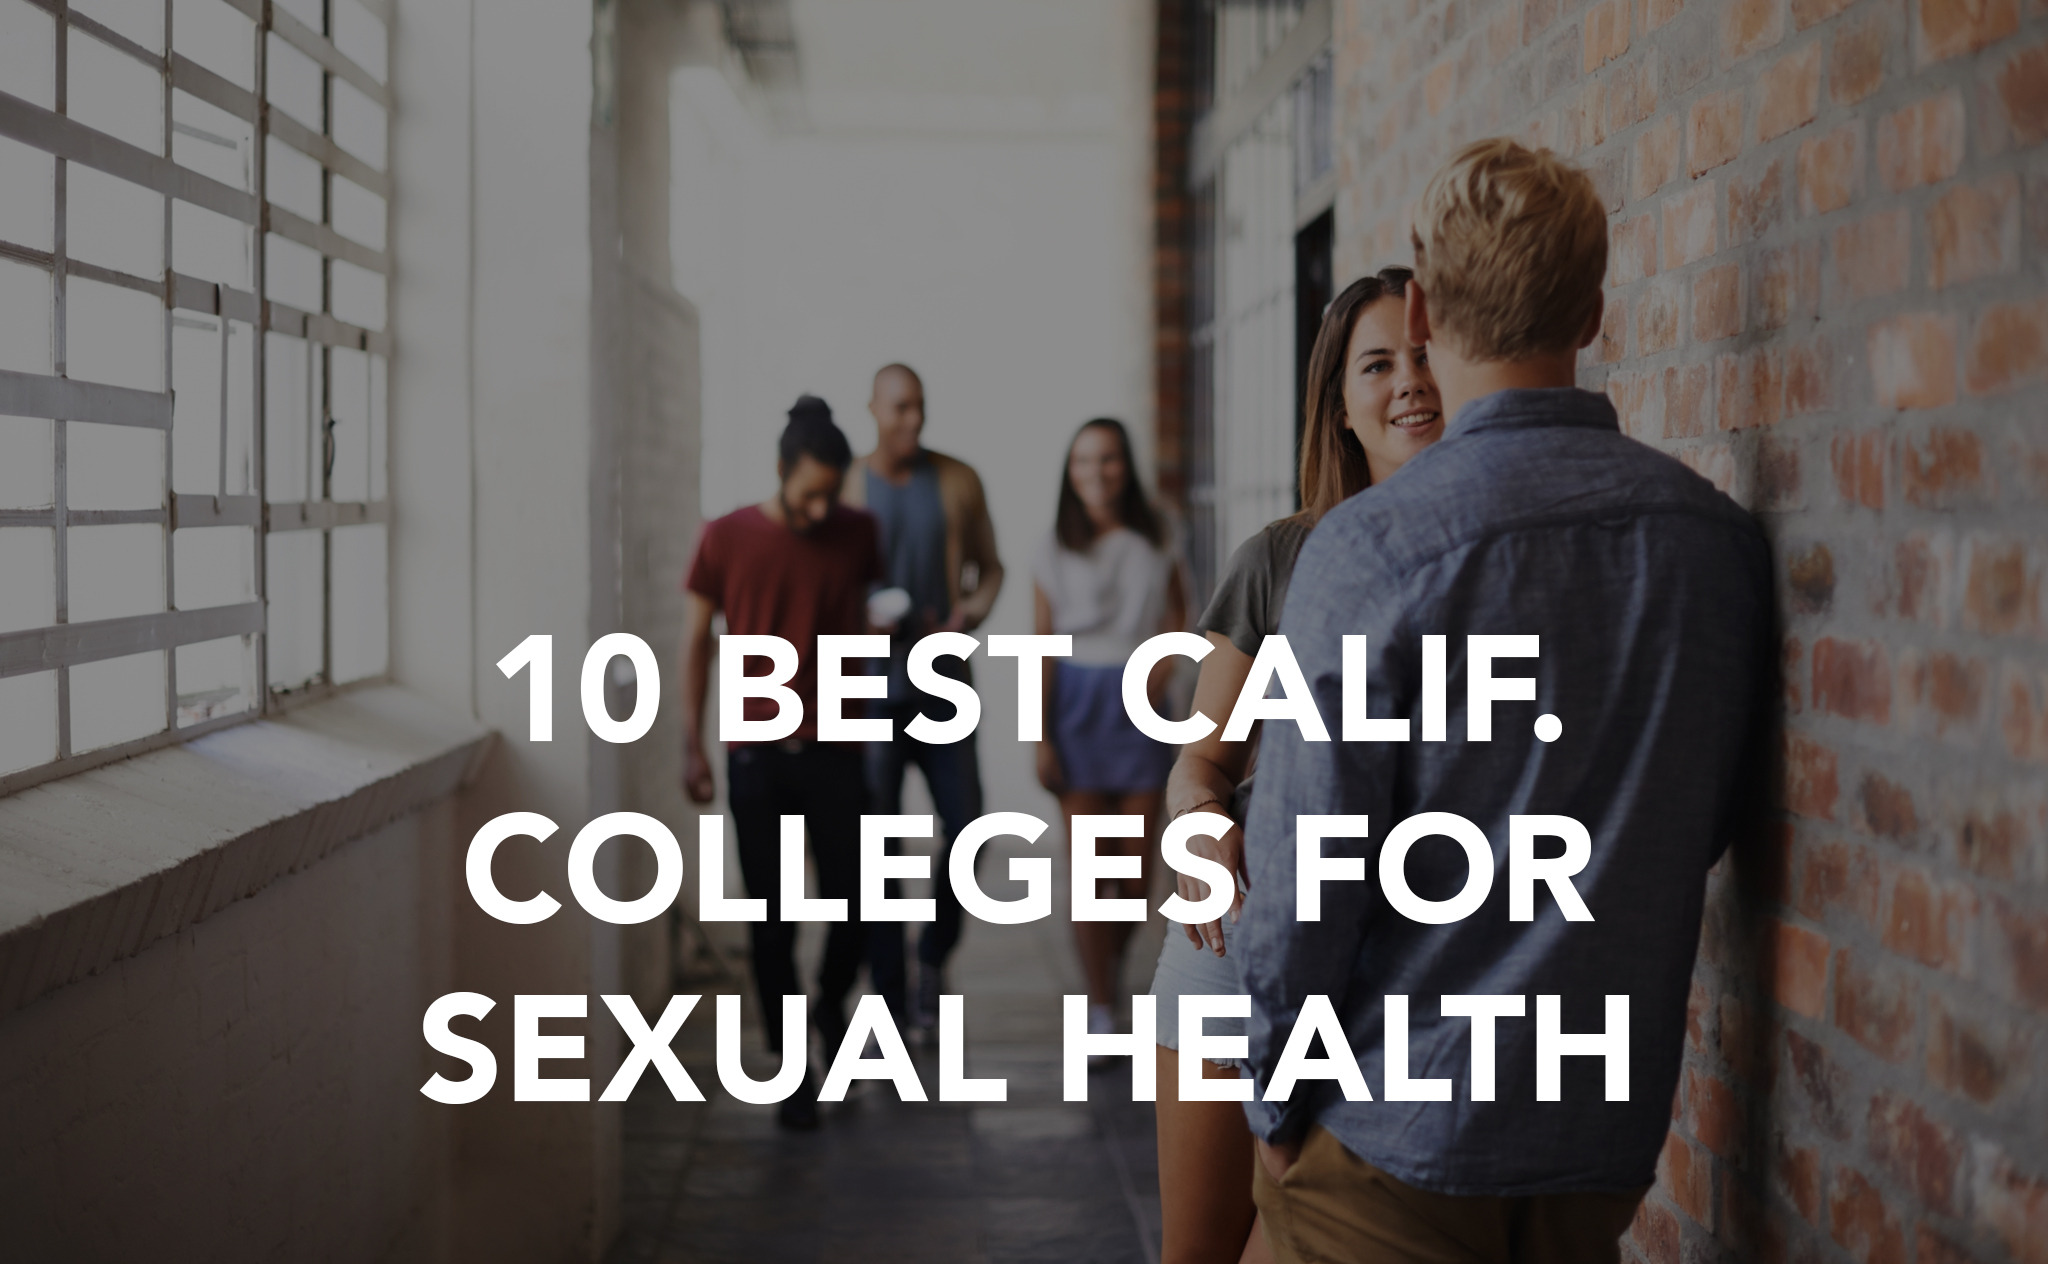 Sexual health education in college